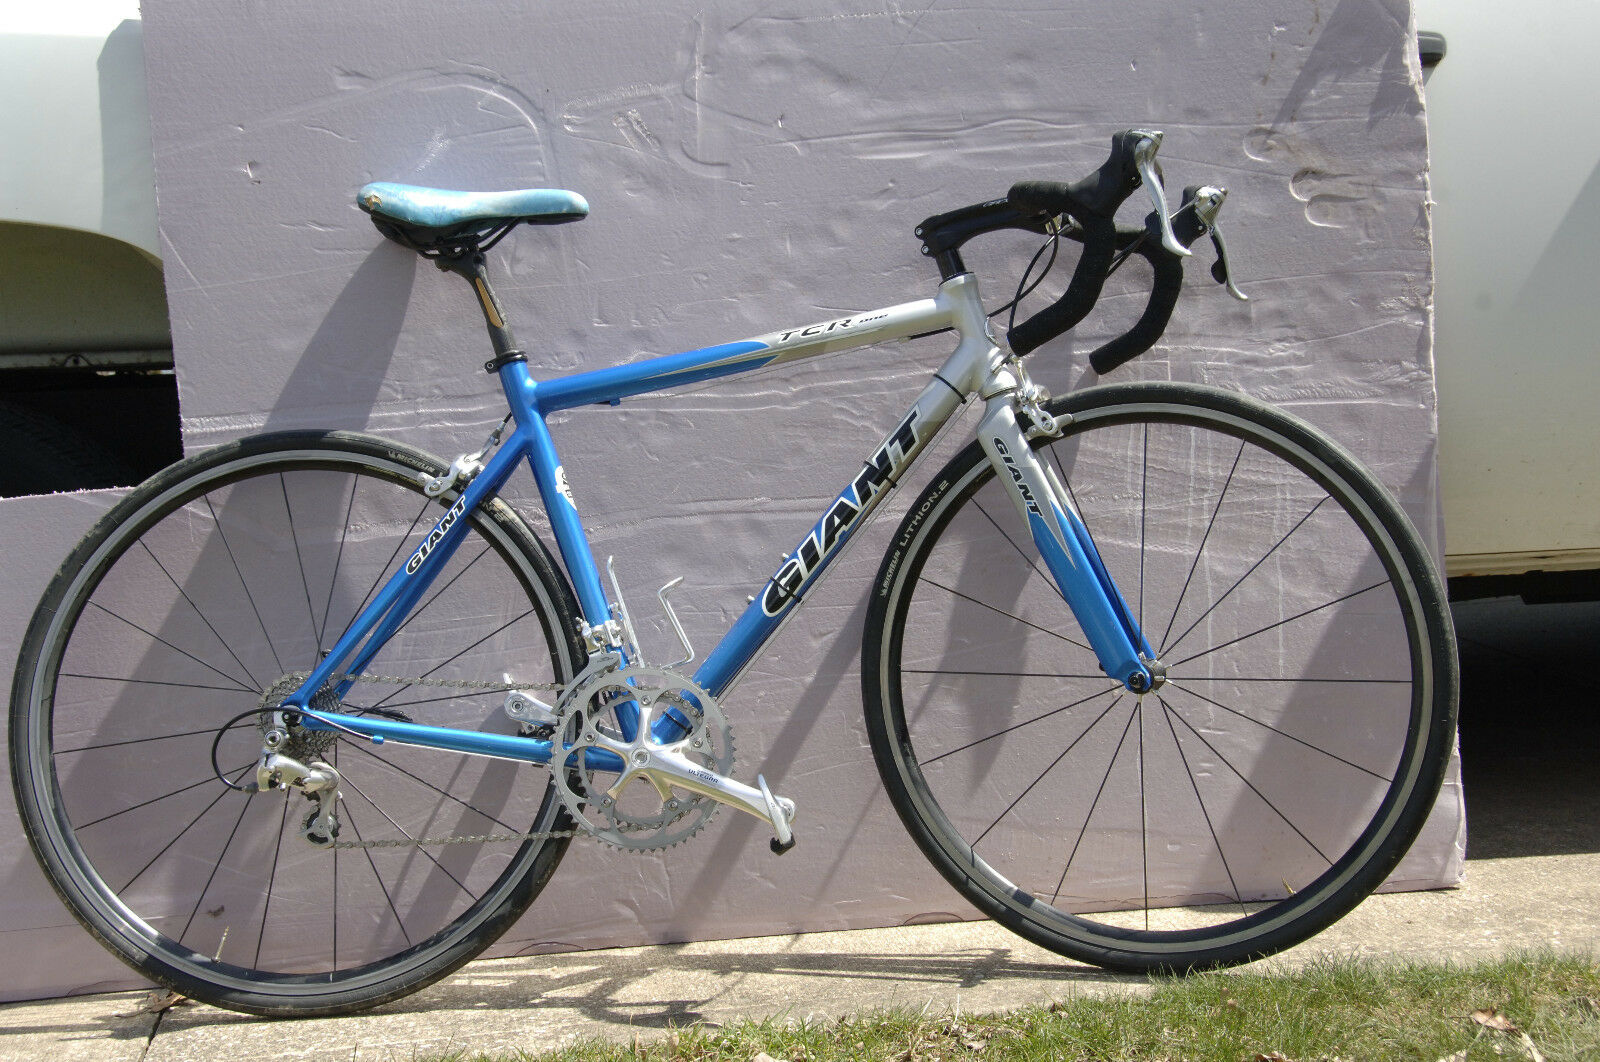 Find giant road bikes for sale